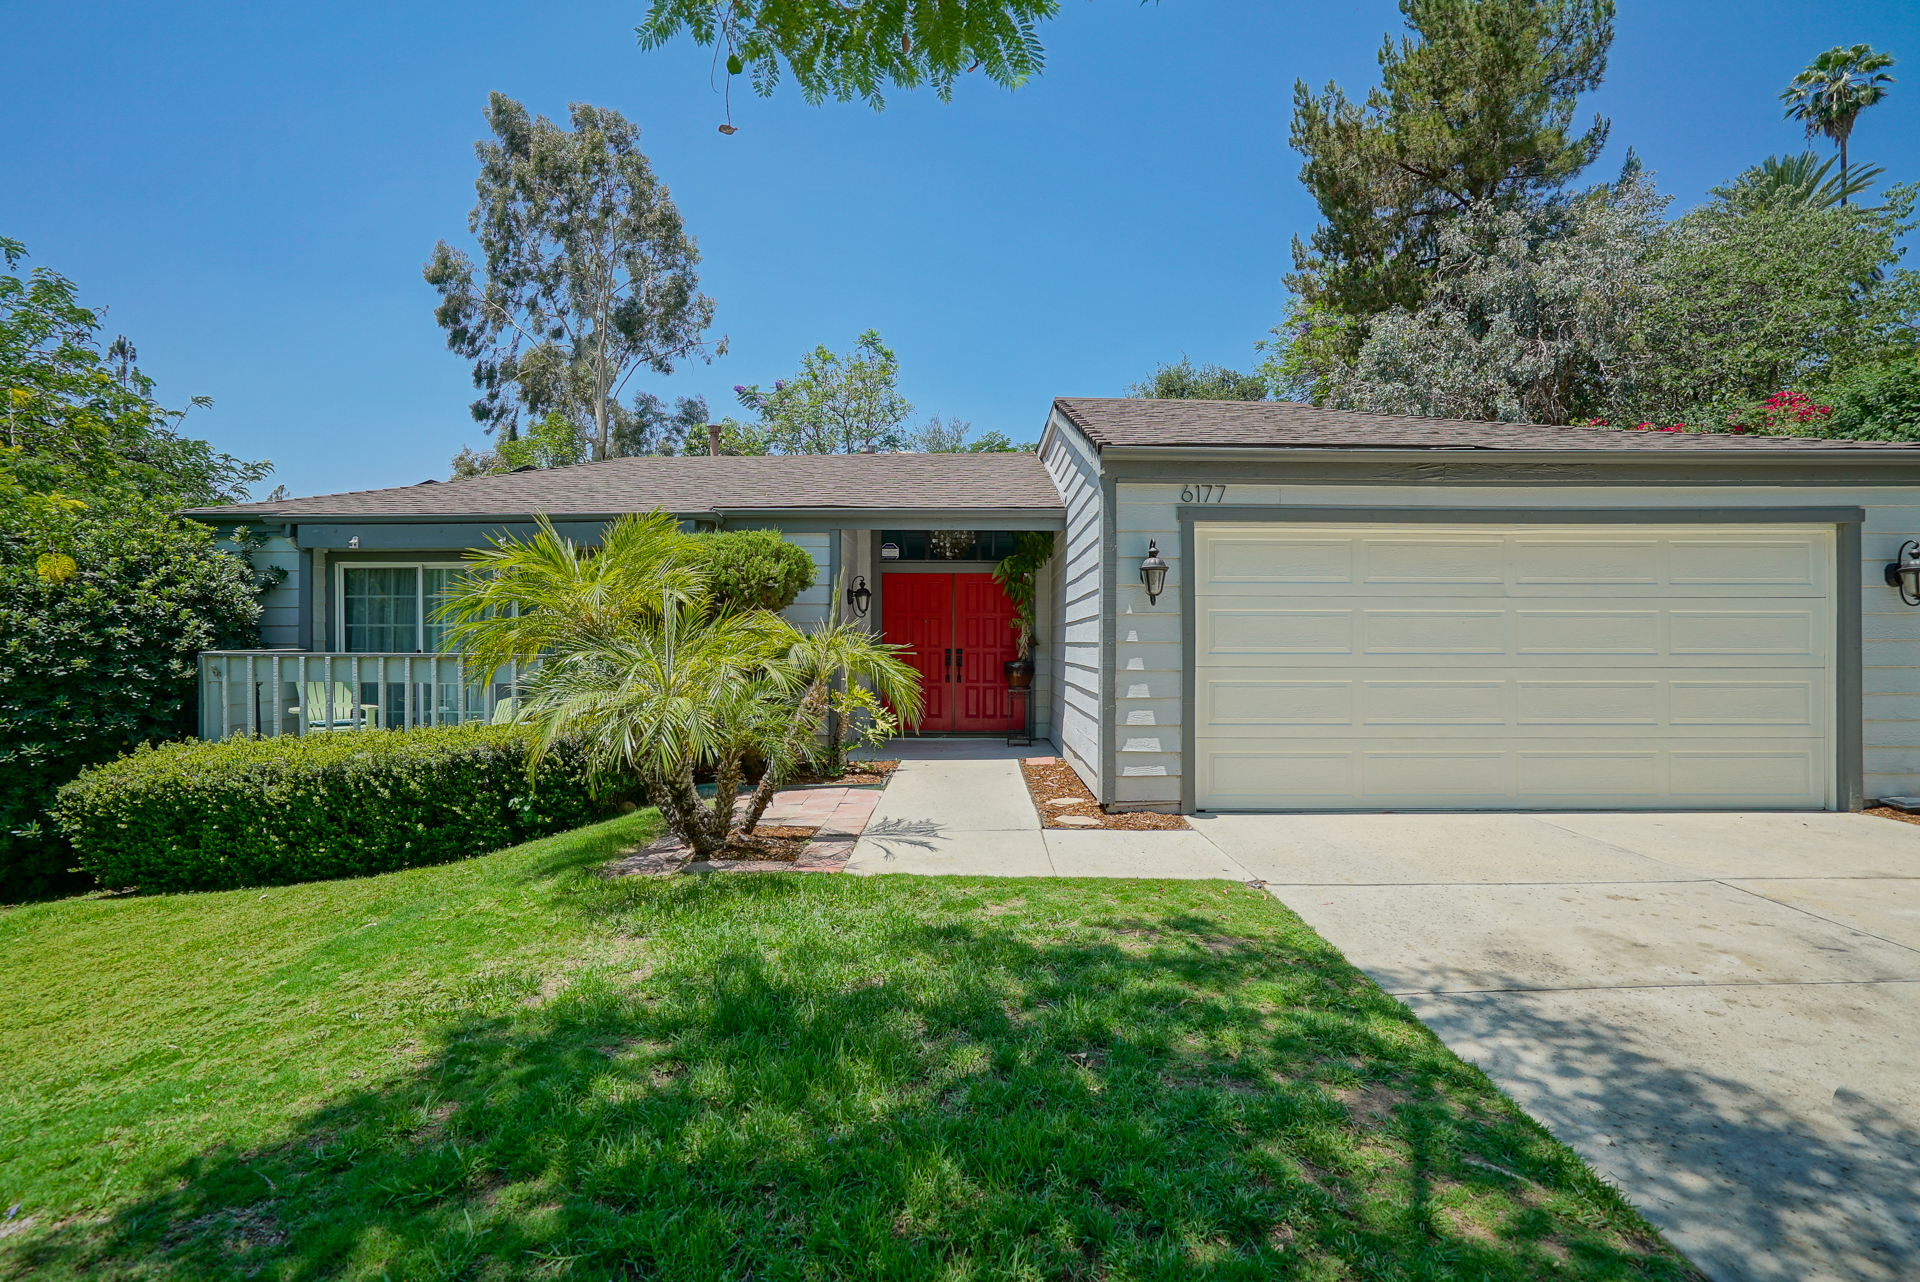 6177 Hillary Court, Riverside CA 92506 listed by THE SISTER TEAM